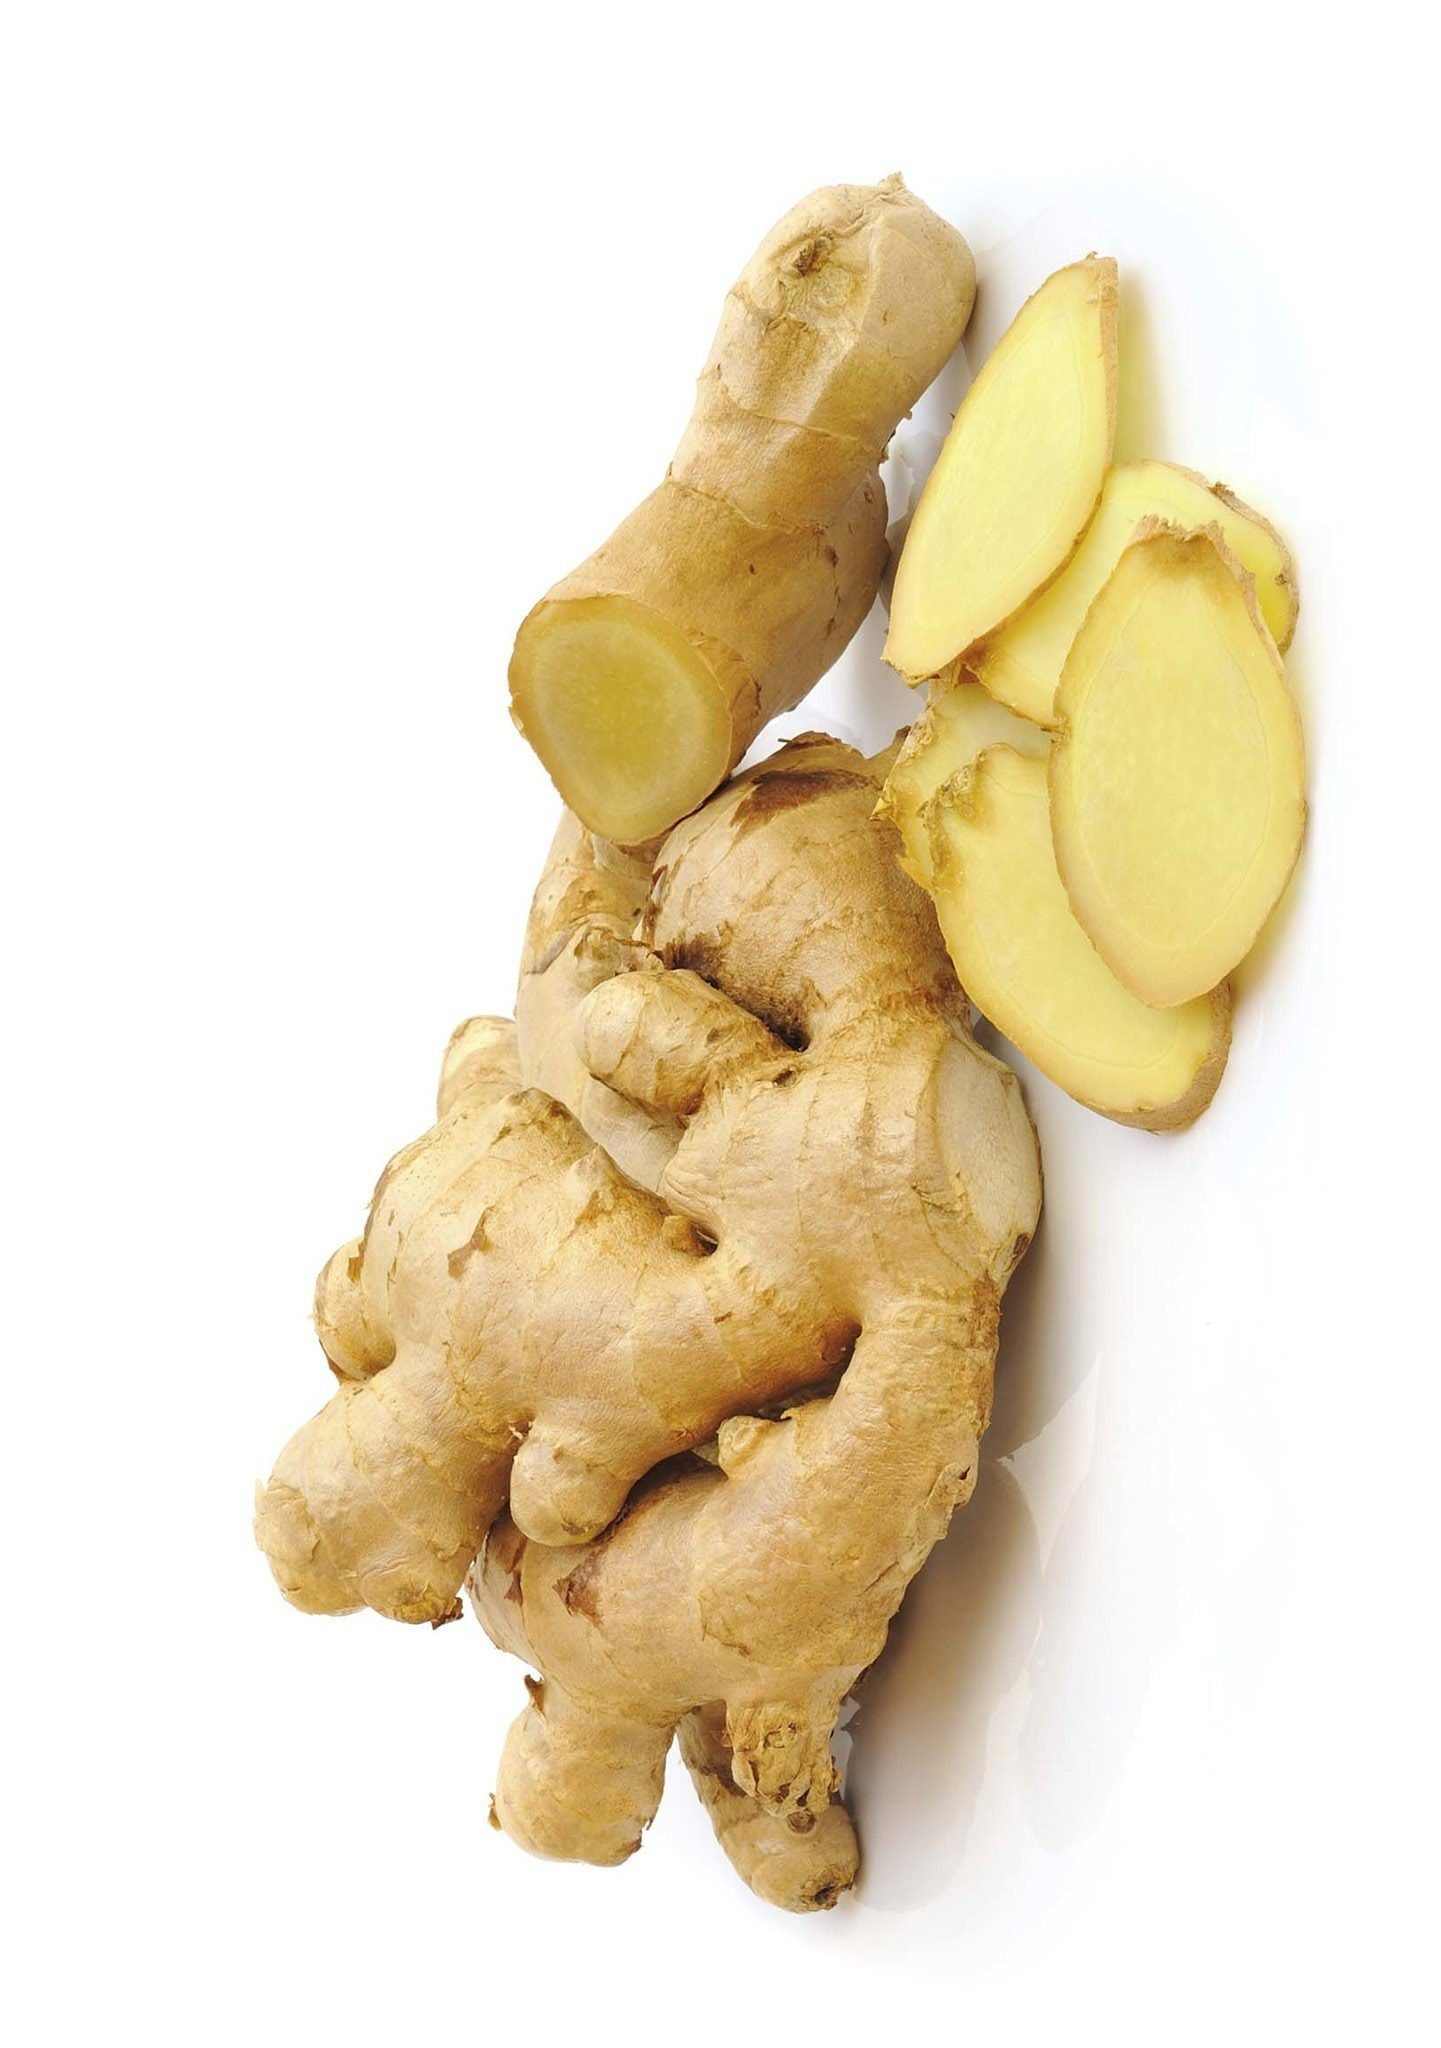 Floviva Ginger Oil